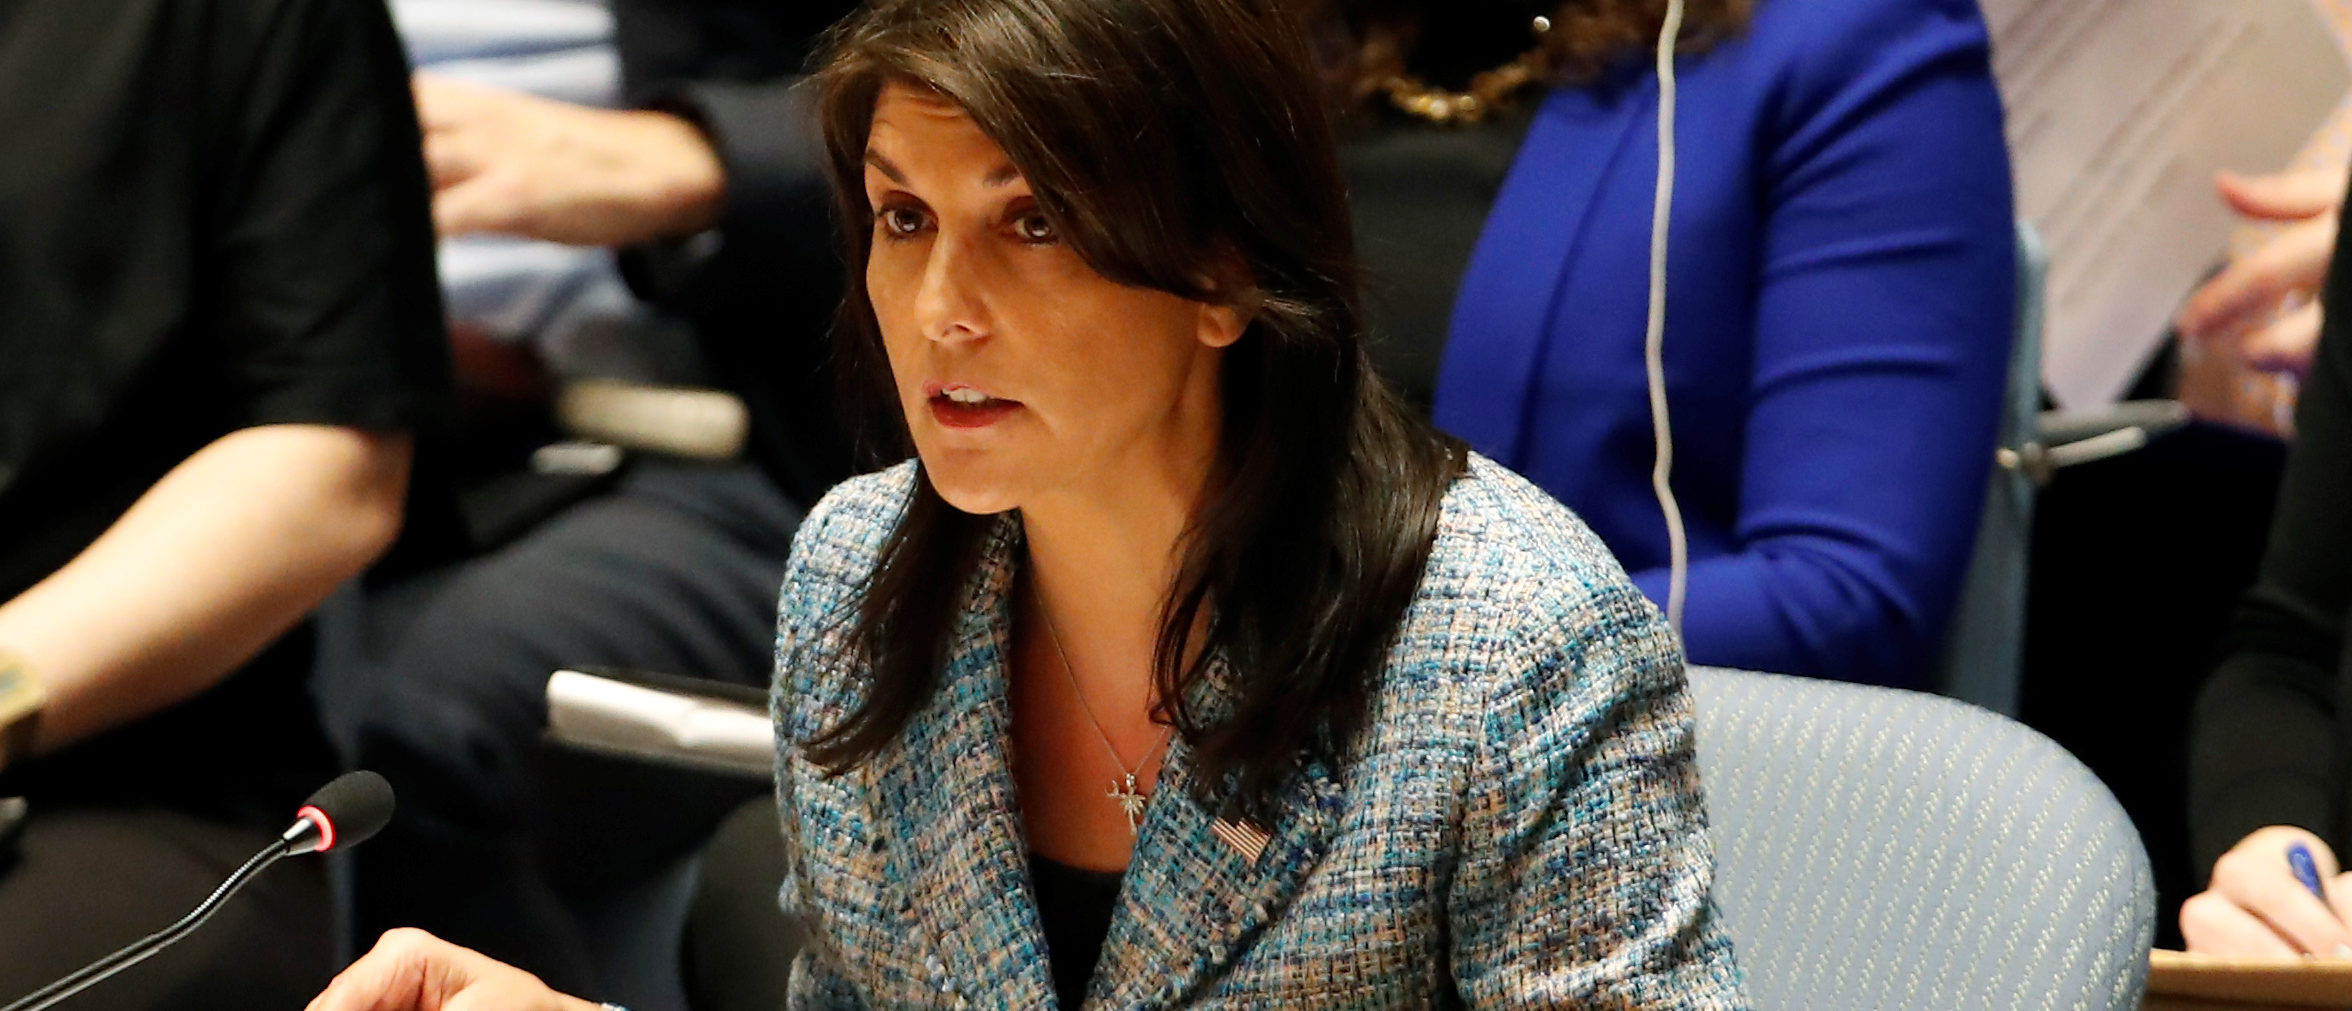 United States Ambassador to the United Nations Nikki Haley addresses the U.N. Security Council on Syria during a meeting of the Council at U.N. headquarters in New York, March 12, 2018. REUTERS/Mike Segar